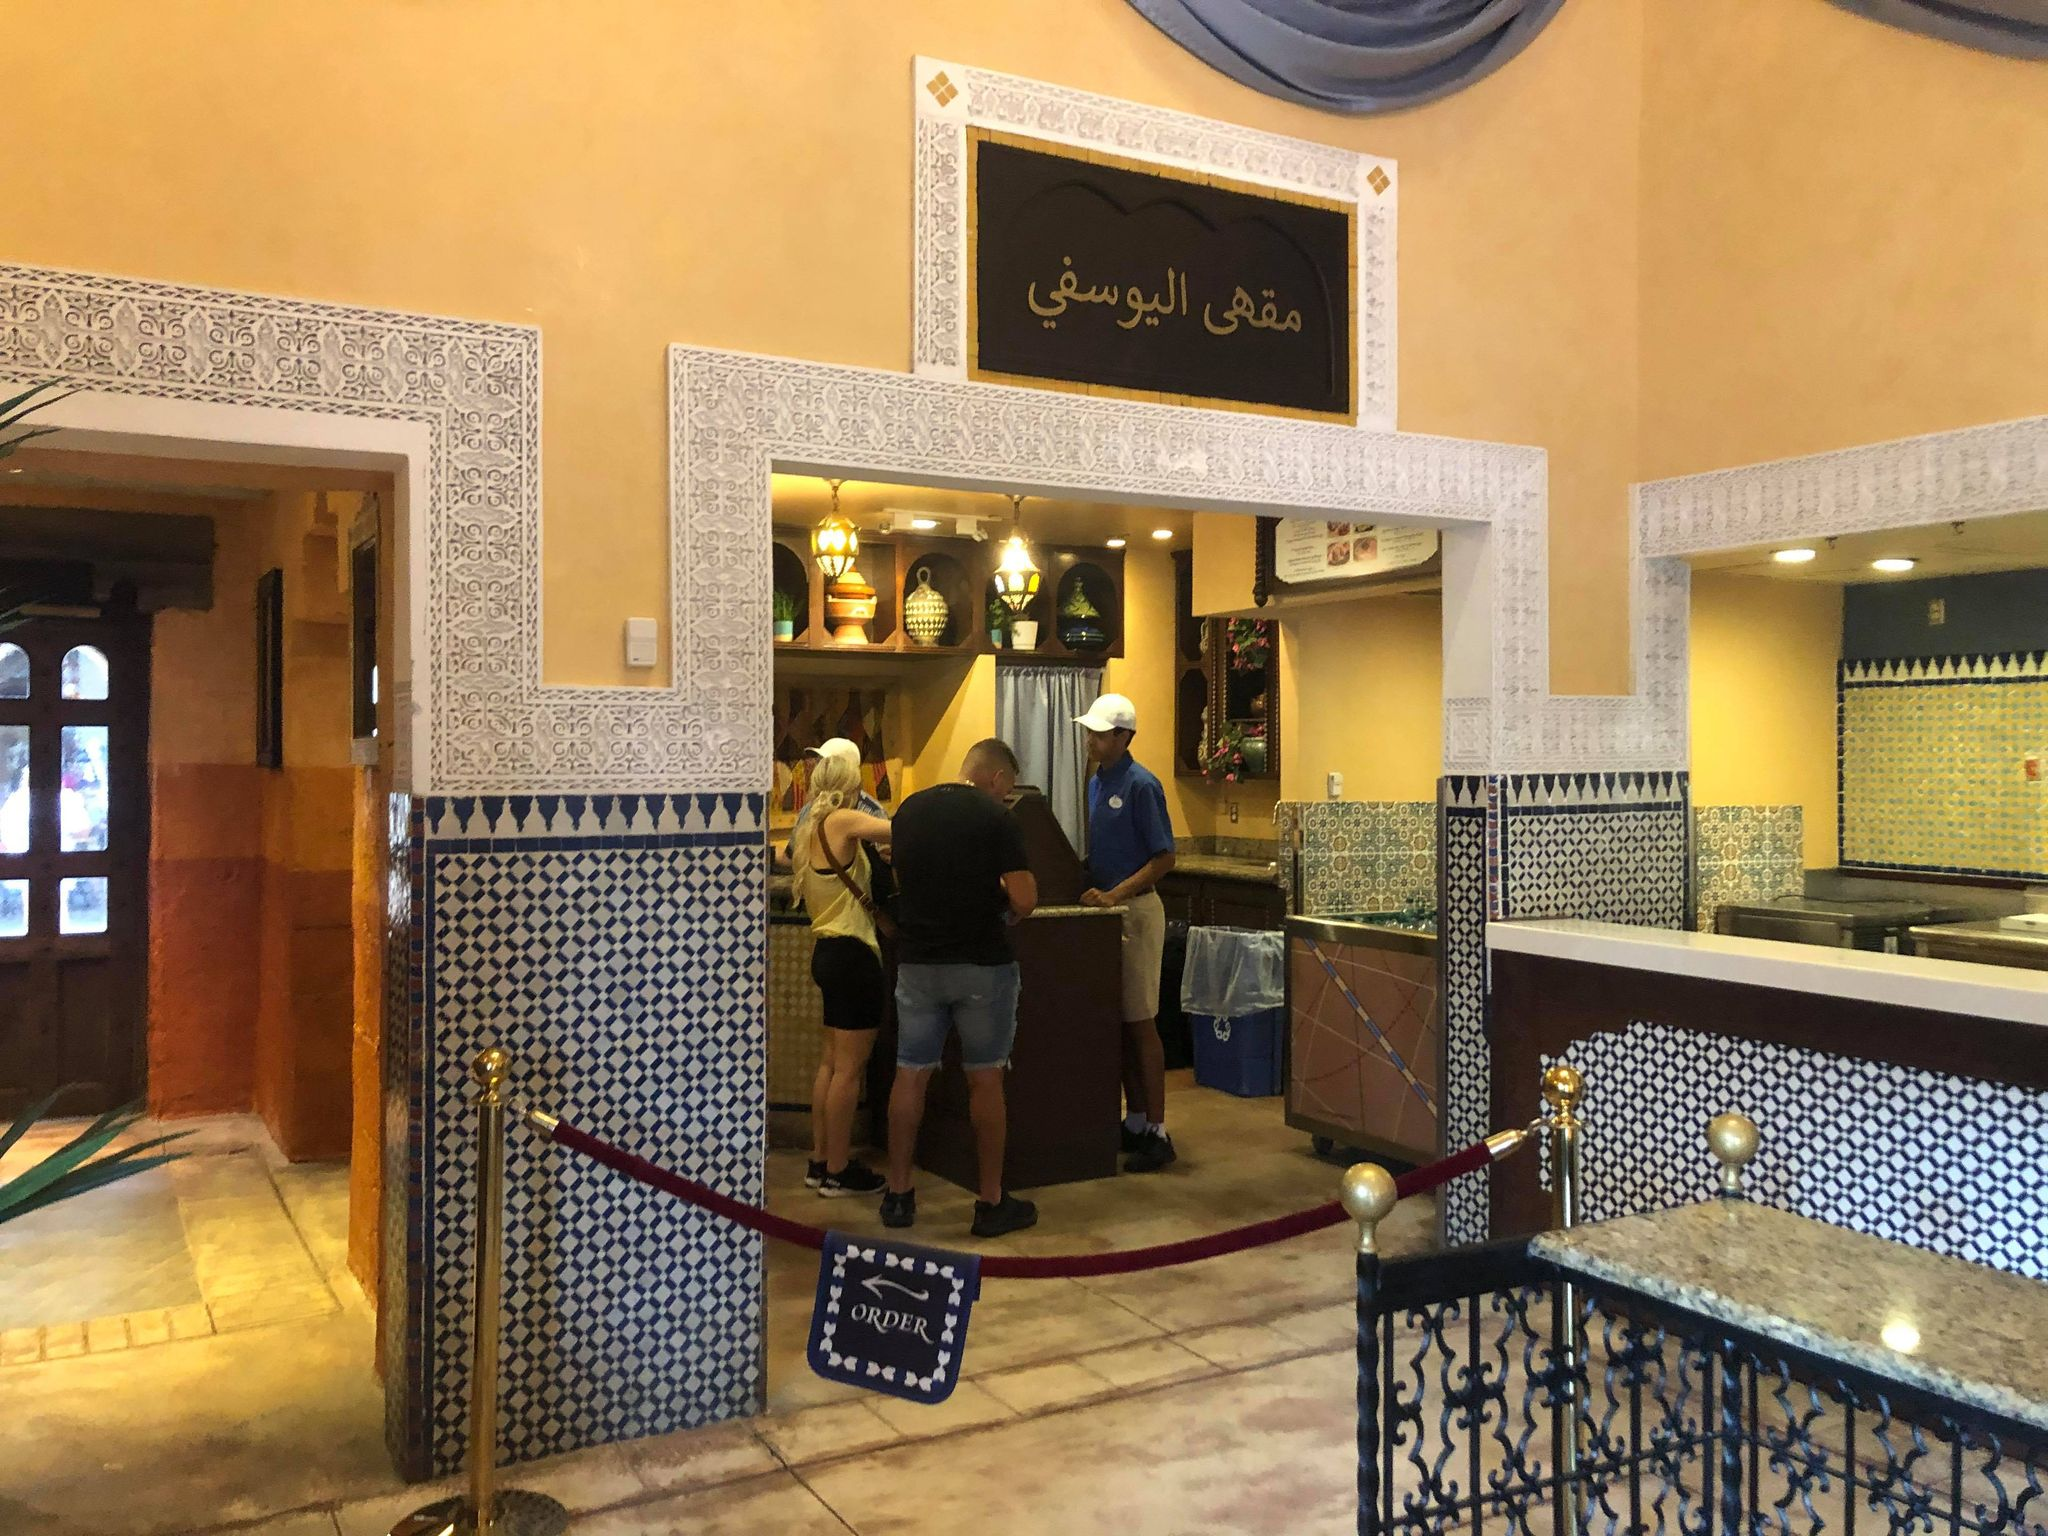 Tangierine Café: Flavors of the Medina Opens for Epcot Food & Wine Festival 4